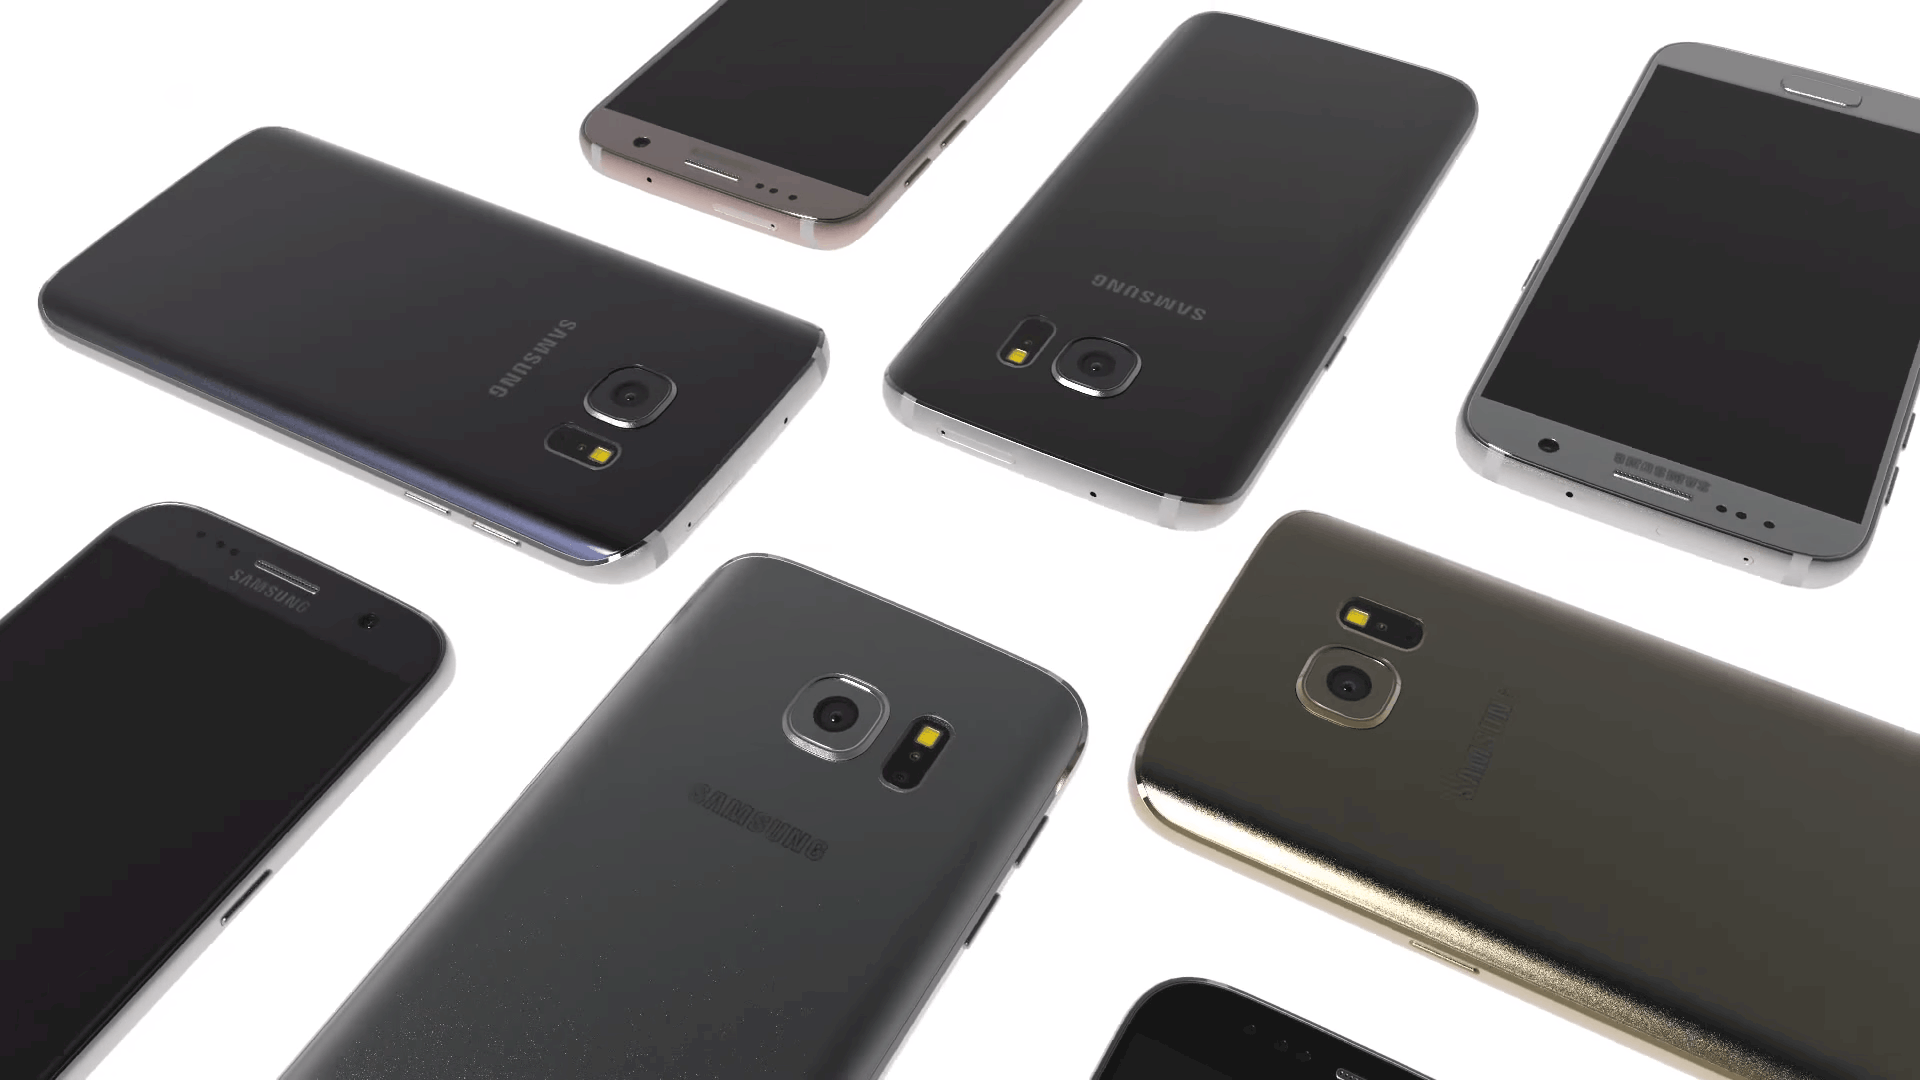 Galaxy S7 Video Based On Leaks